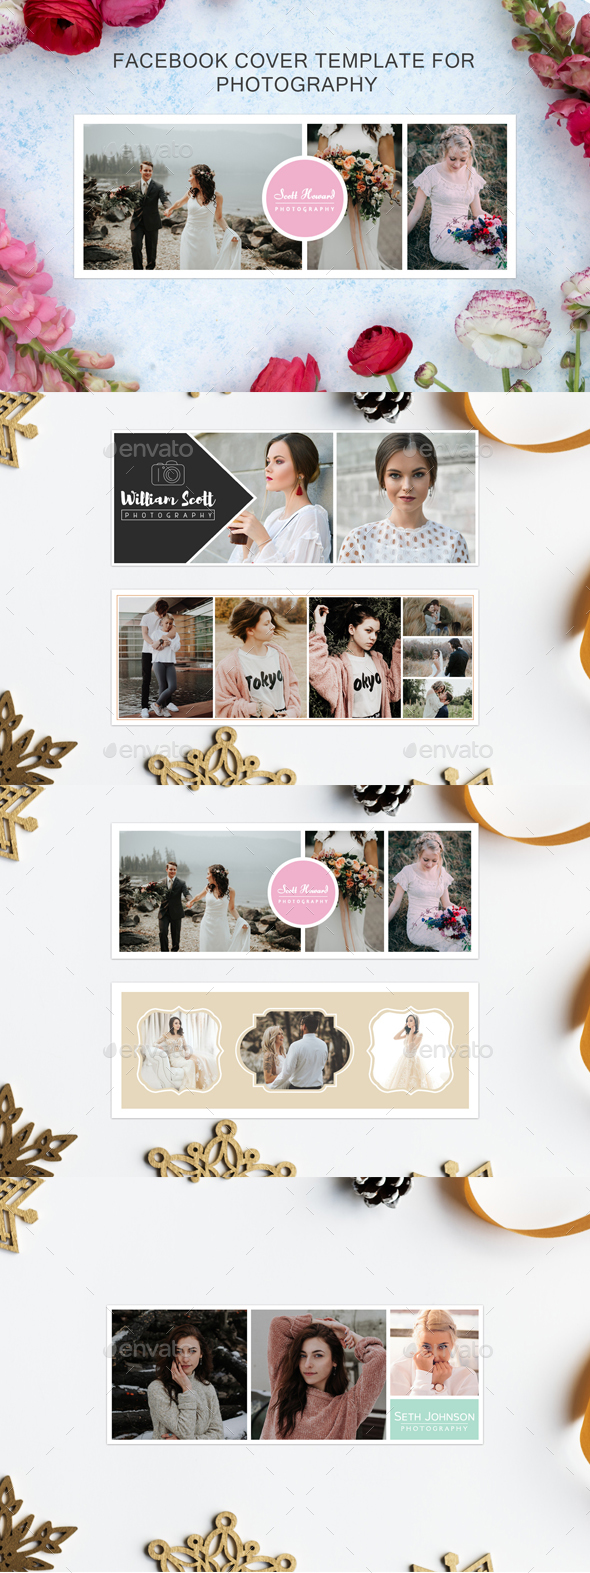 5 Facebook Cover Template for Photography - Facebook Timeline Covers Social Media